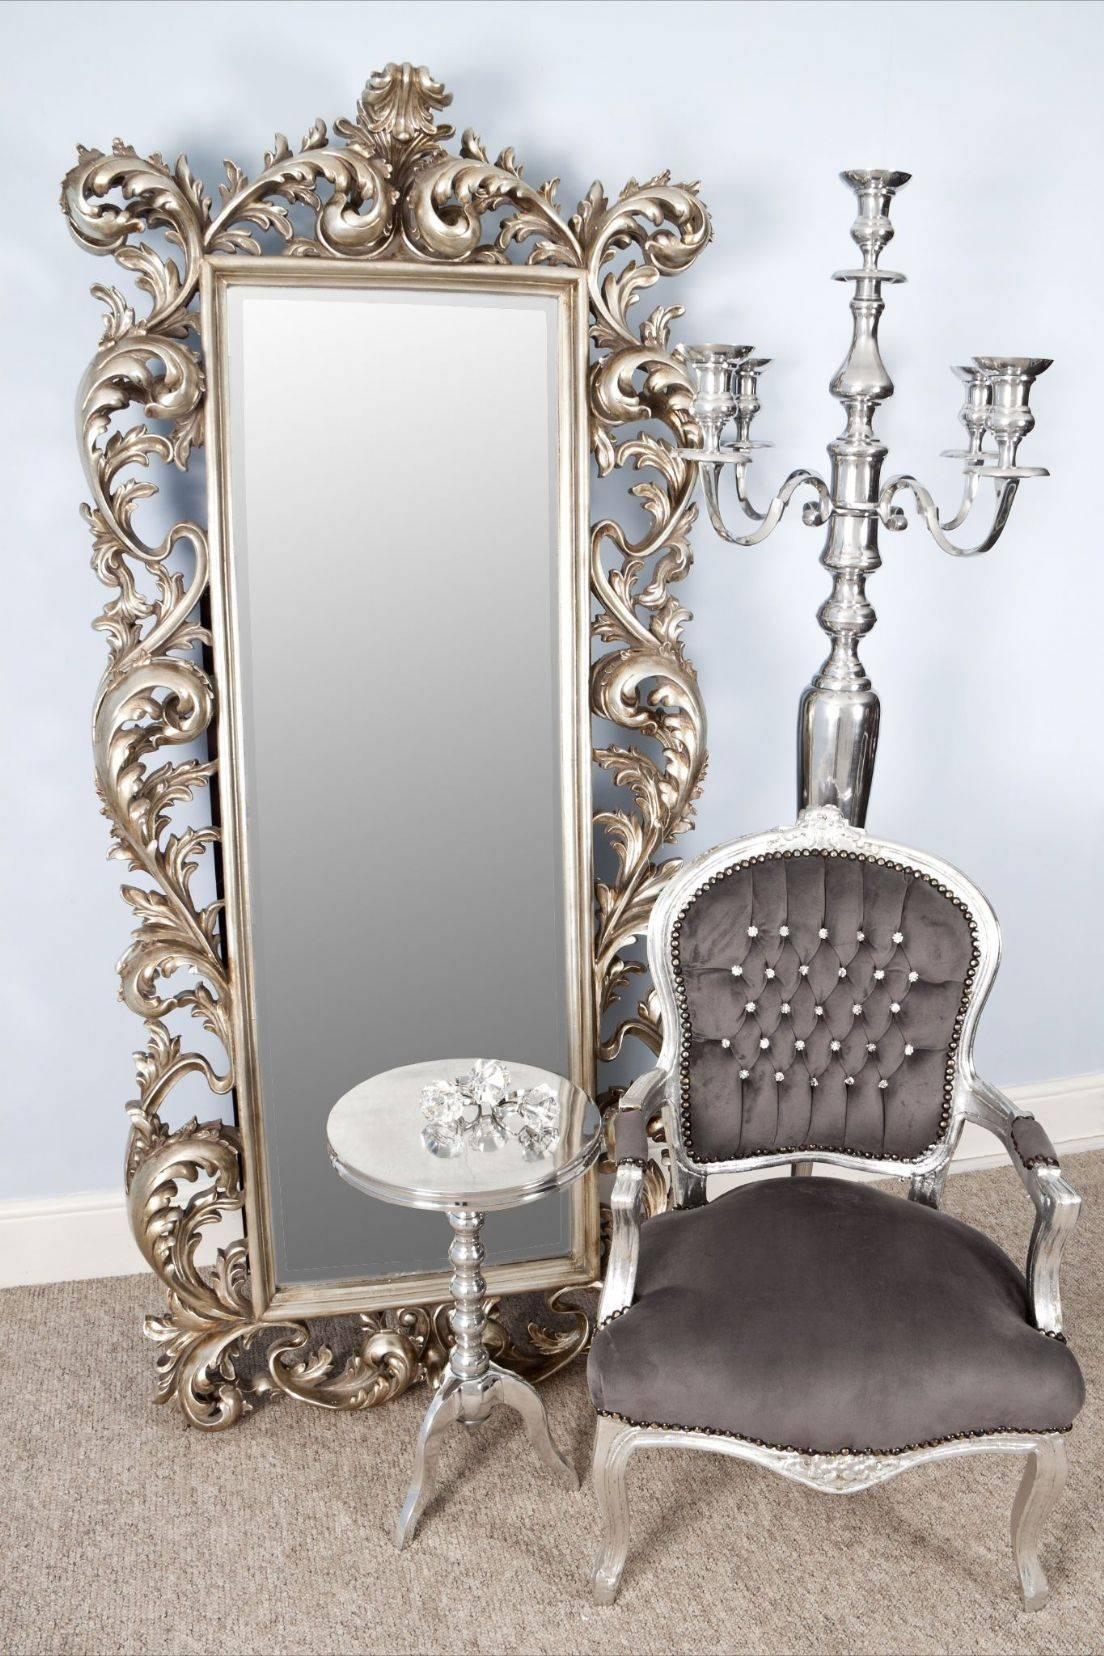 Cheval Mirrors | Exclusive Mirrors within Silver Cheval Mirrors (Image 4 of 25)